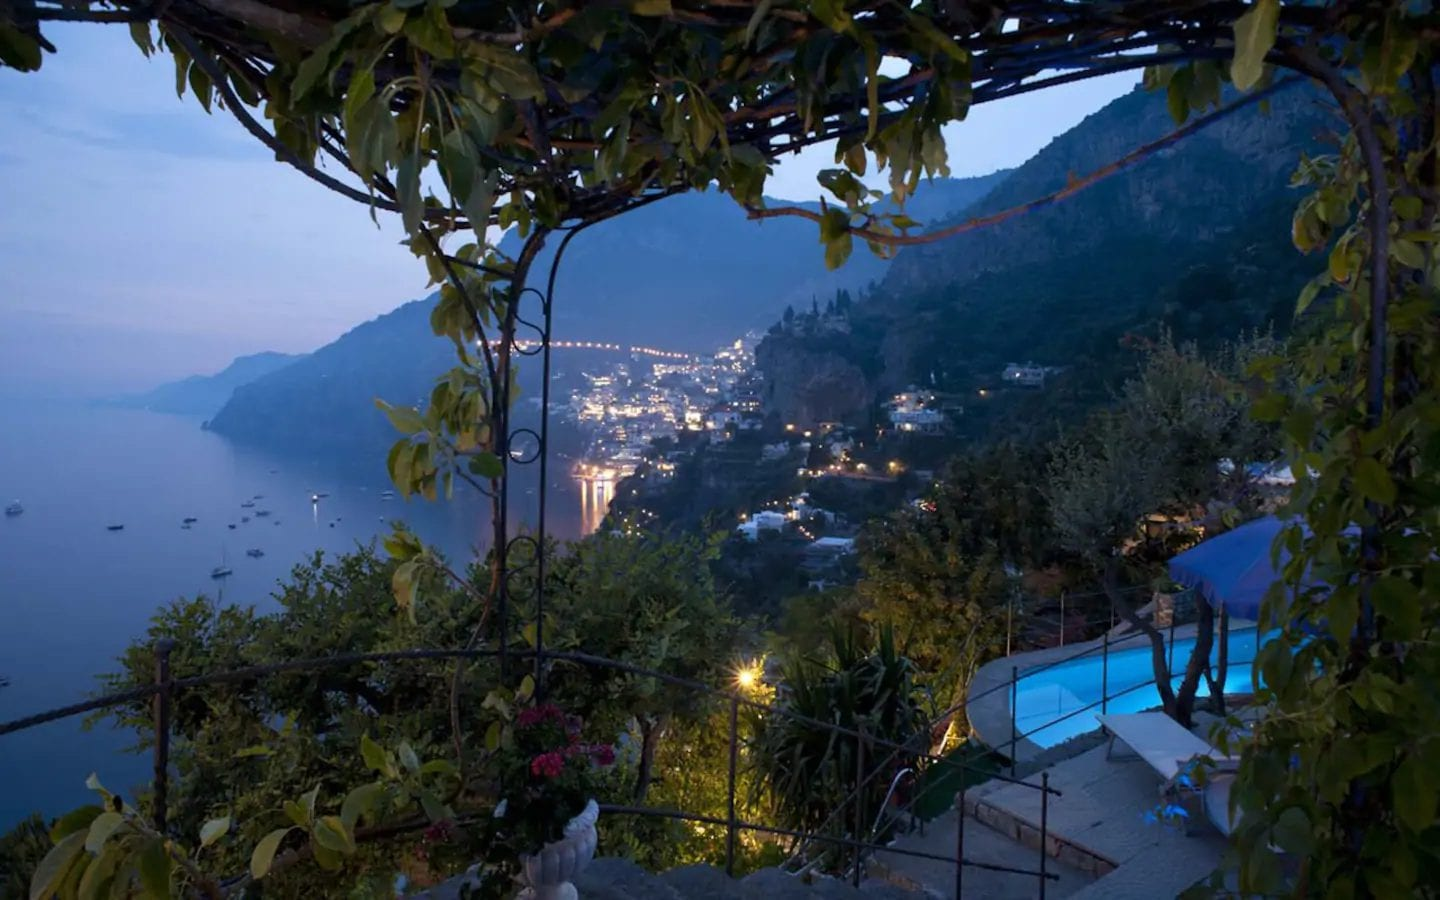 13 Of The Very Best Airbnb In Positano Italy - Amalfi Coast